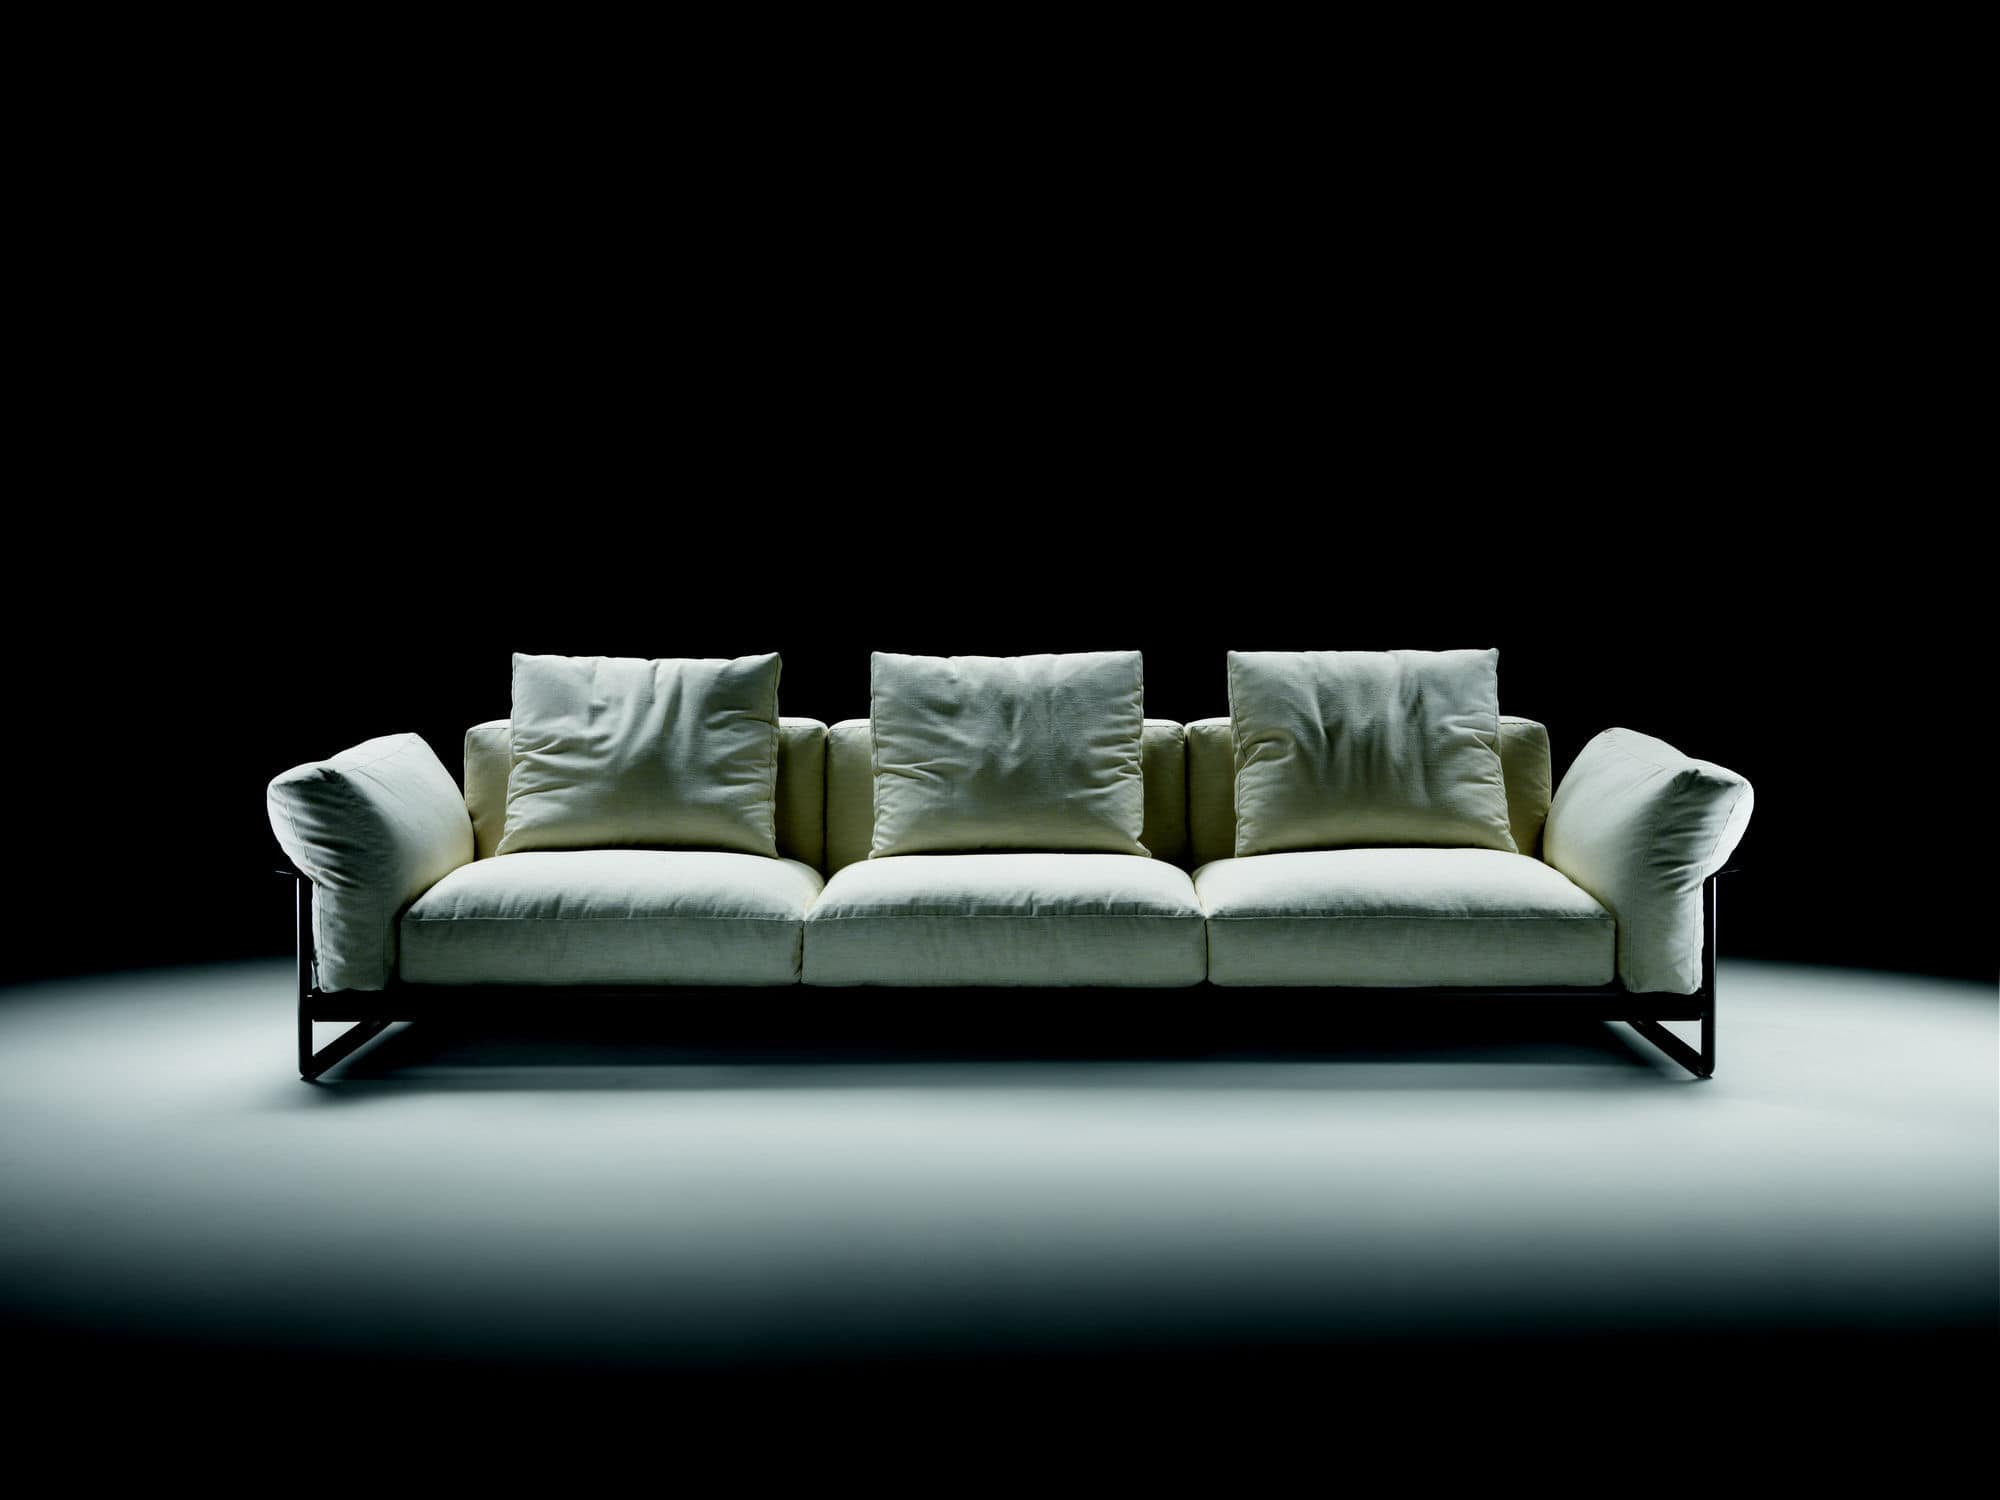 Modular sofa / contemporary / leather / fabric - ZENO LIGHT - FLEXFORM